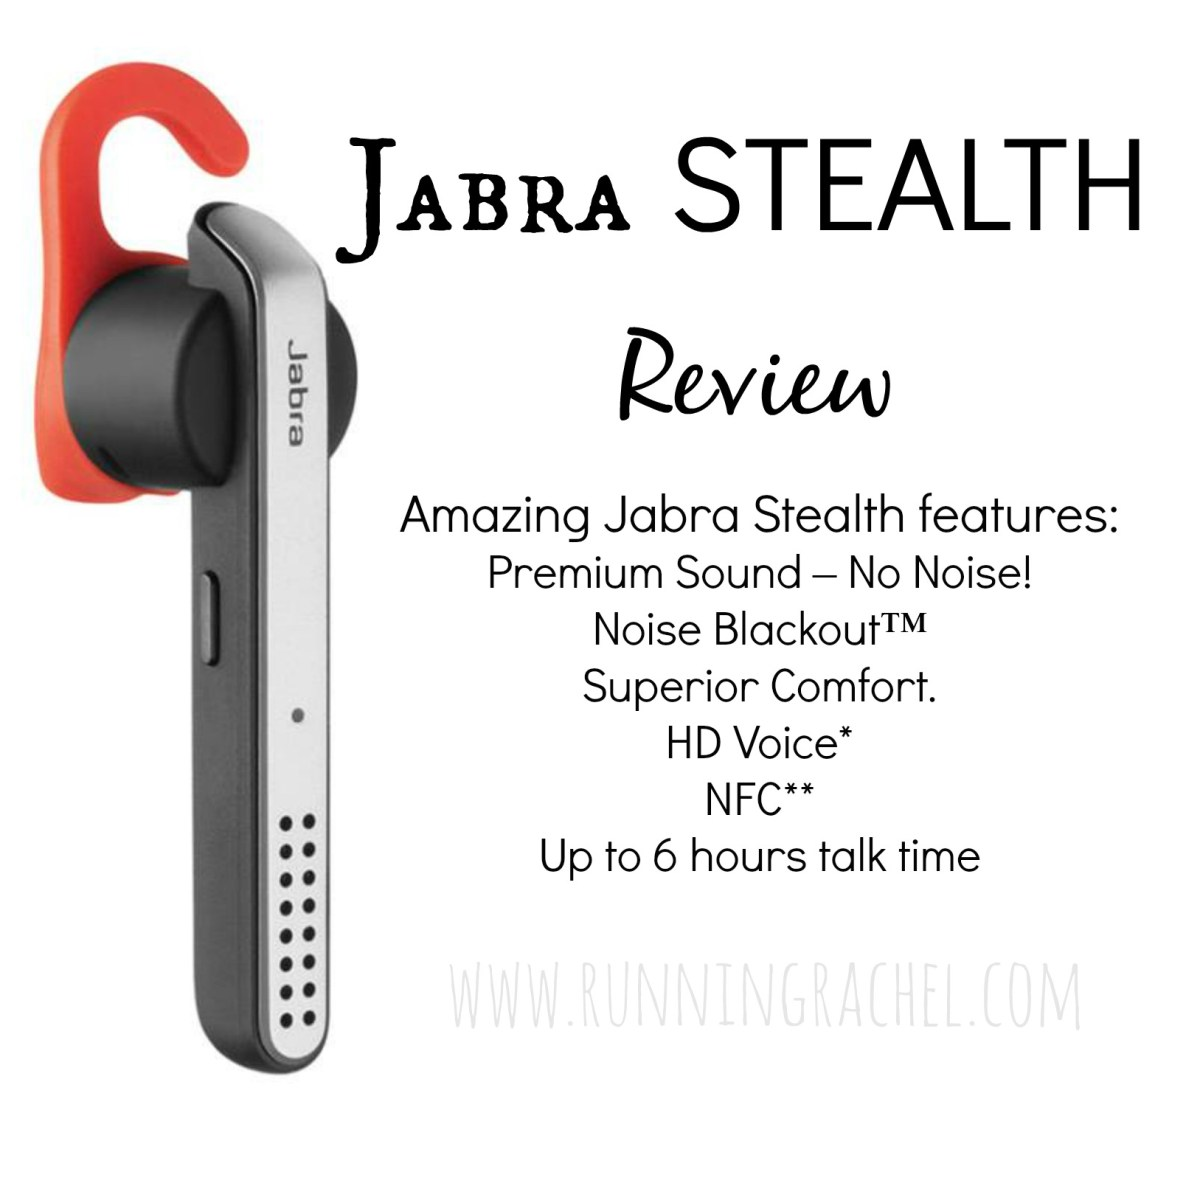 Jabra Stealth Review